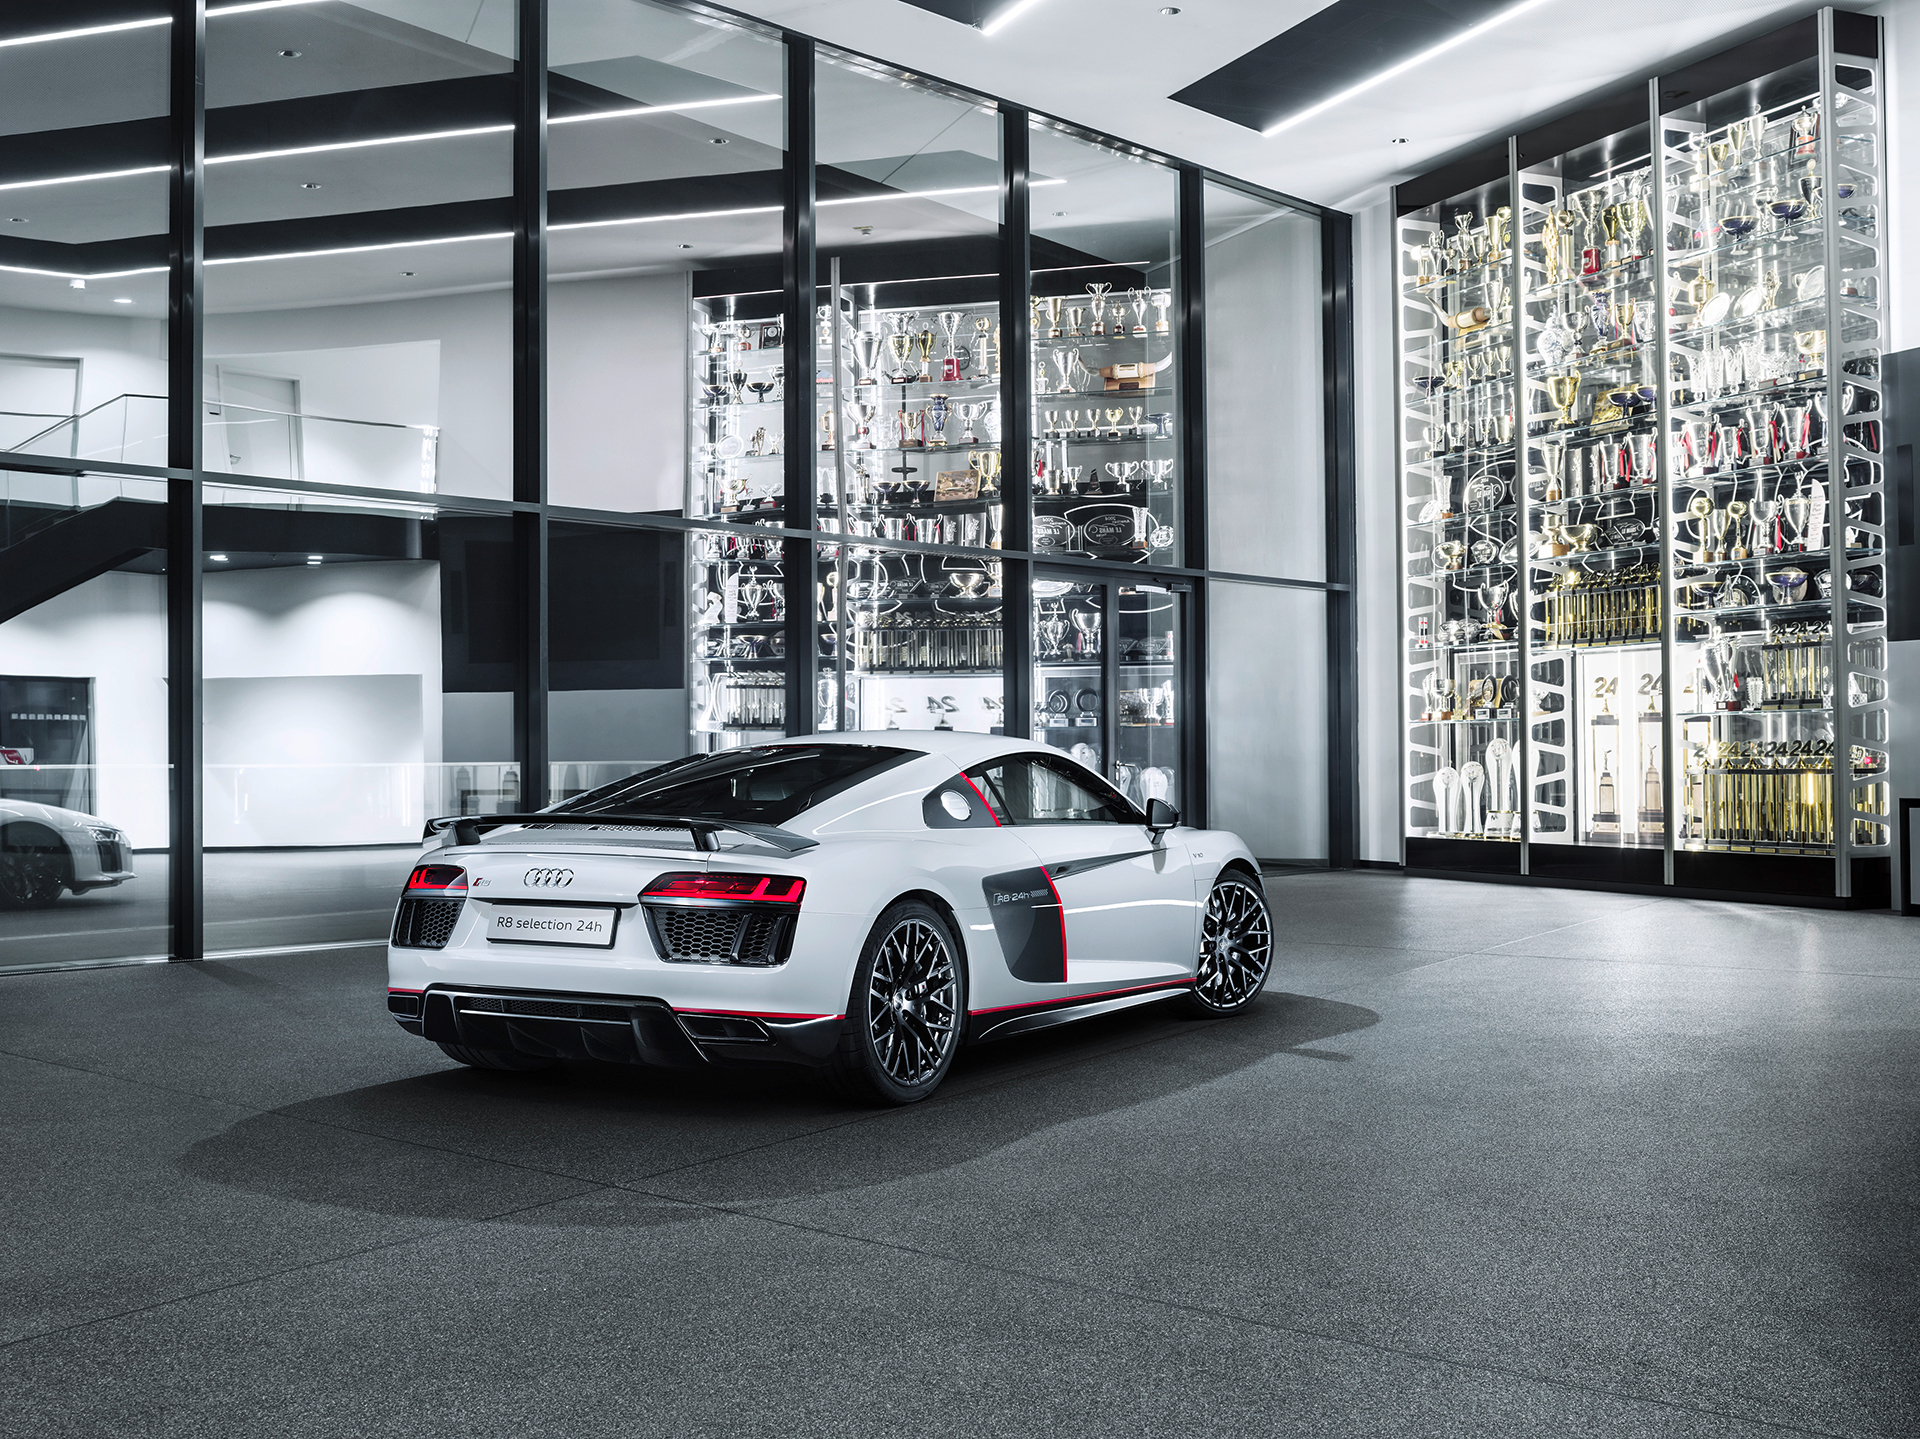 Audi R8 V10 selection 24h - 2016 - rear side-face / profil arrière